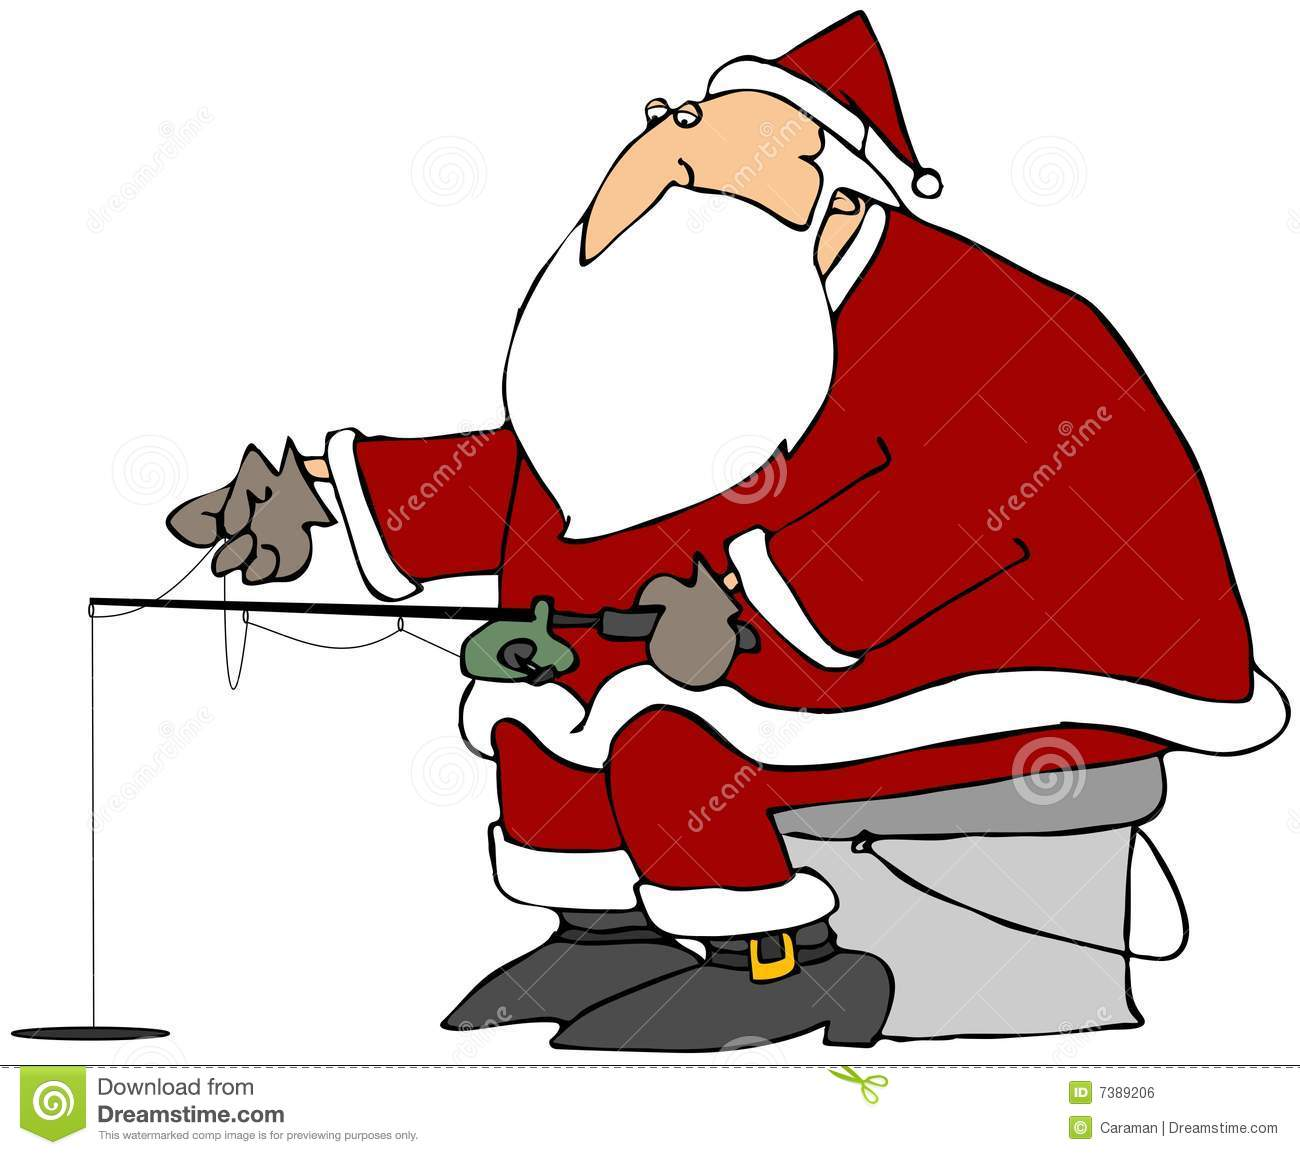 Santa Ice Fishing Royalty Free Stock Ima-Santa Ice Fishing Royalty Free Stock Image-19